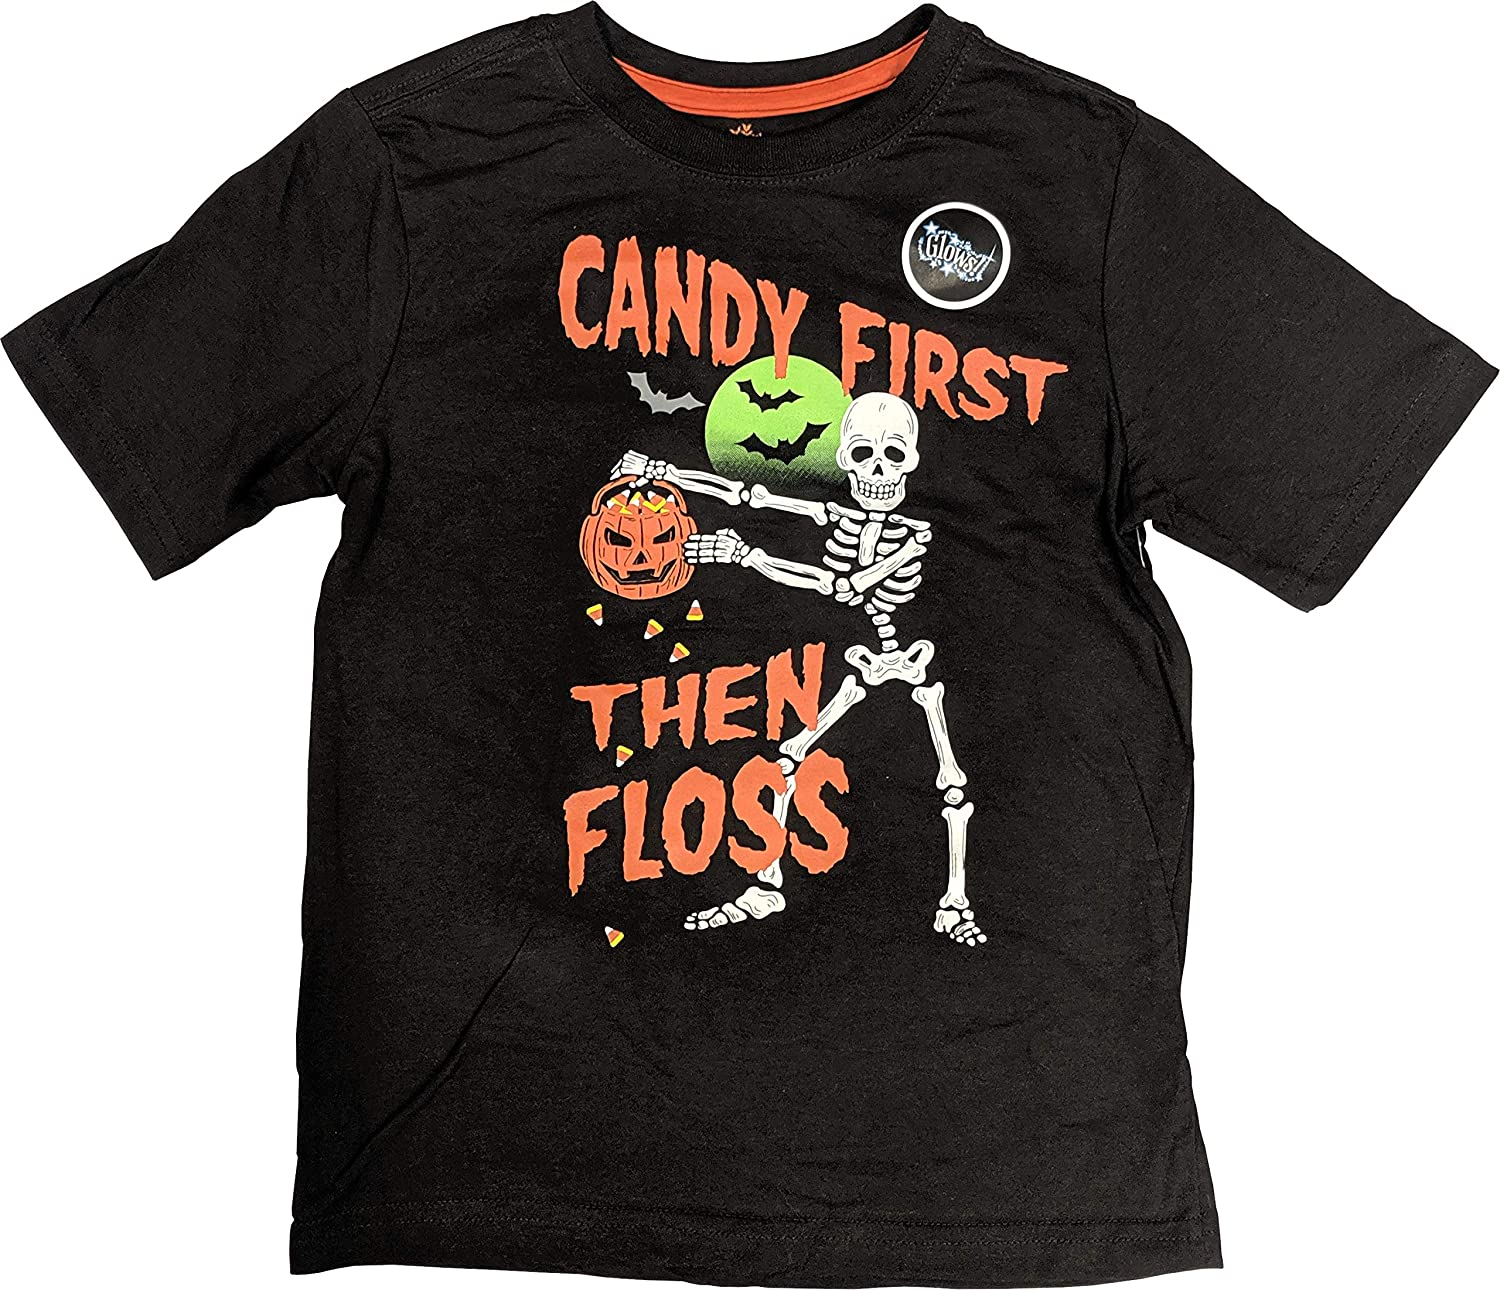 Halloween Glow in The Dark Shirt Candy First Then Floss Tee for Boys